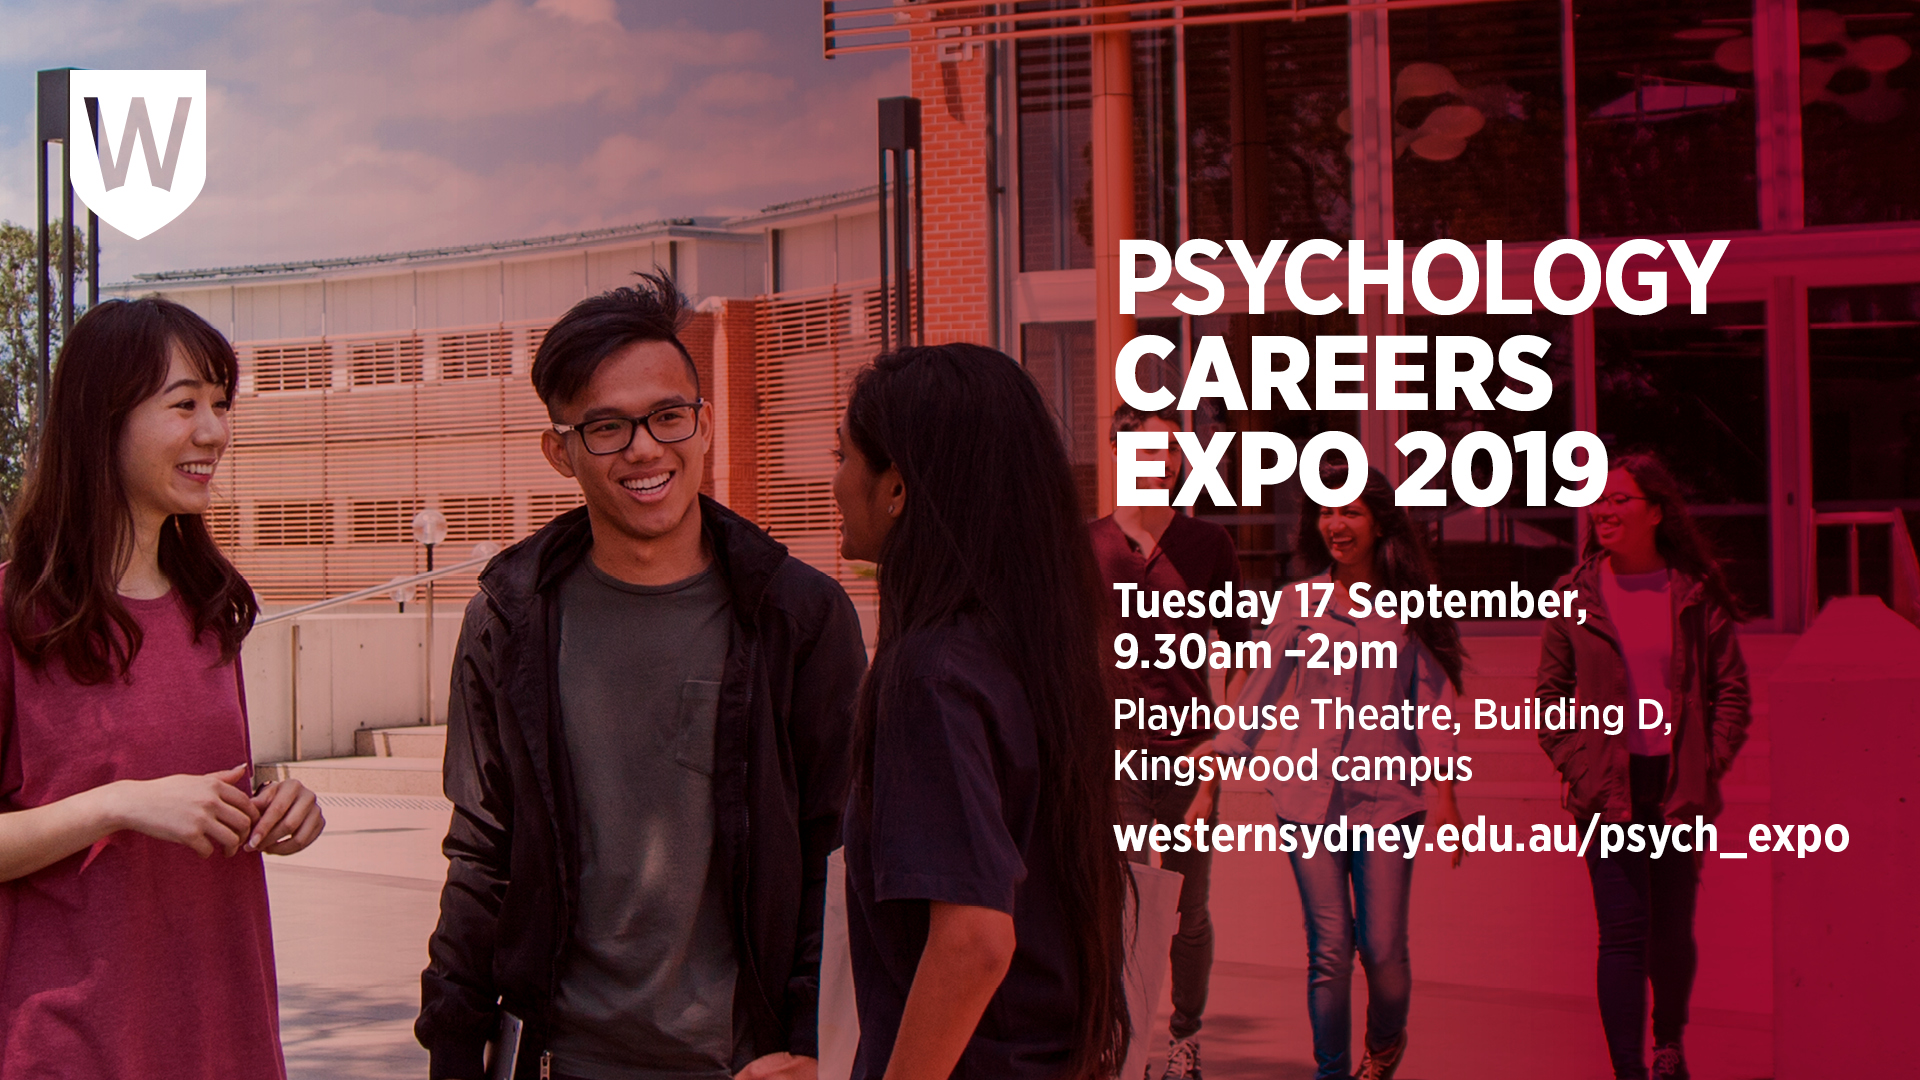 Psychology Careers Expo